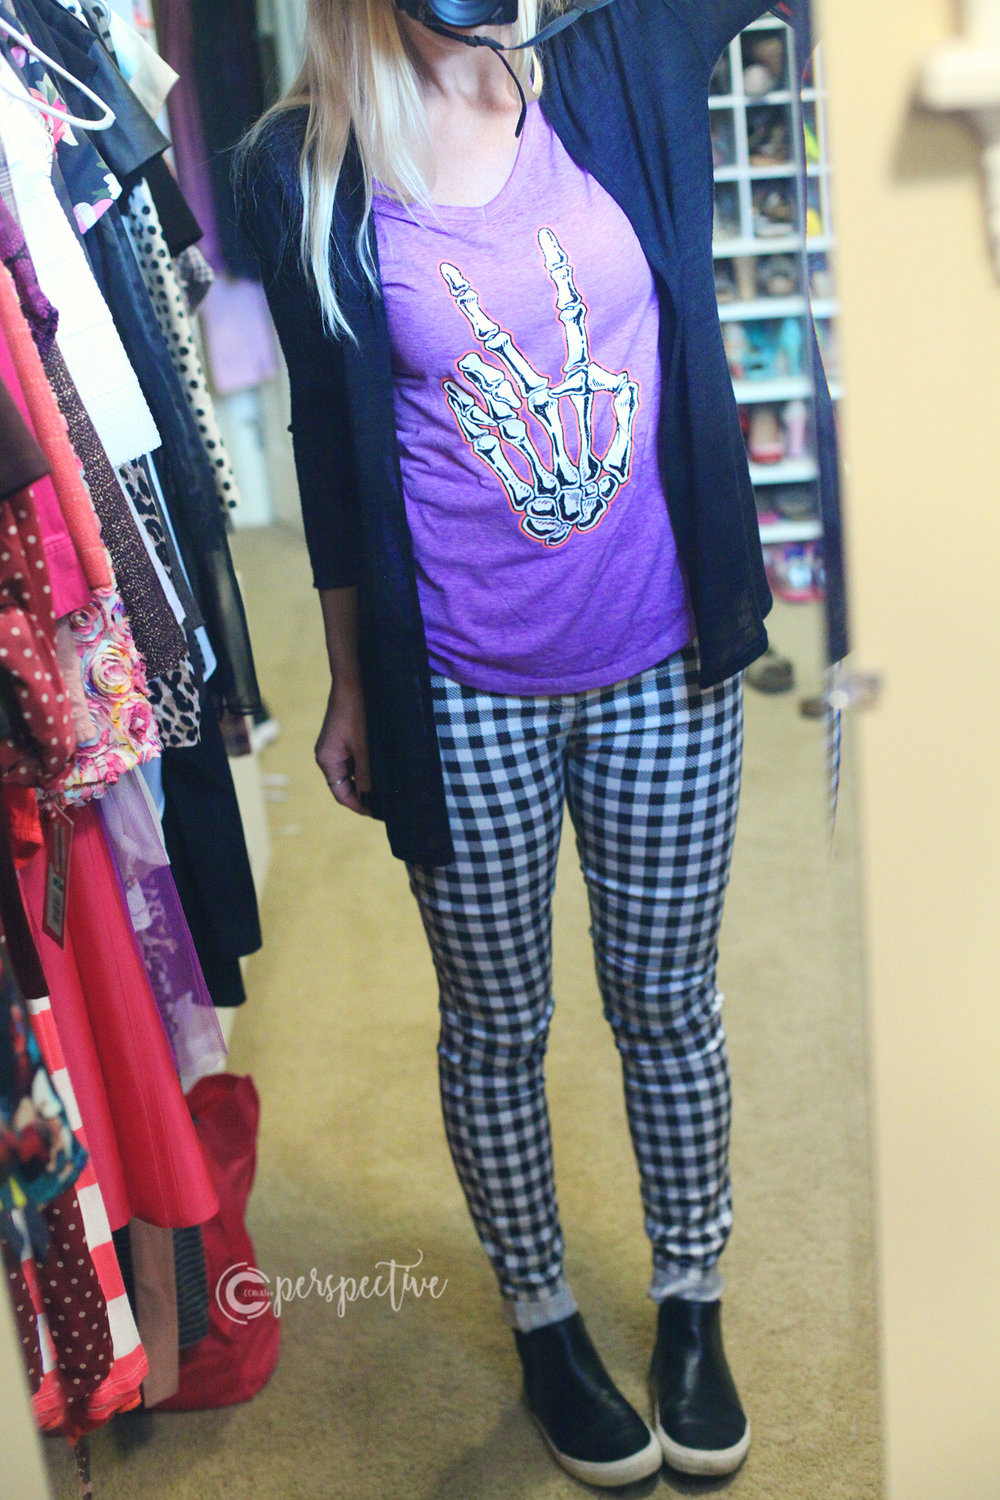 halloween, wearing, gingham pants, bones peace sign, purple shirt